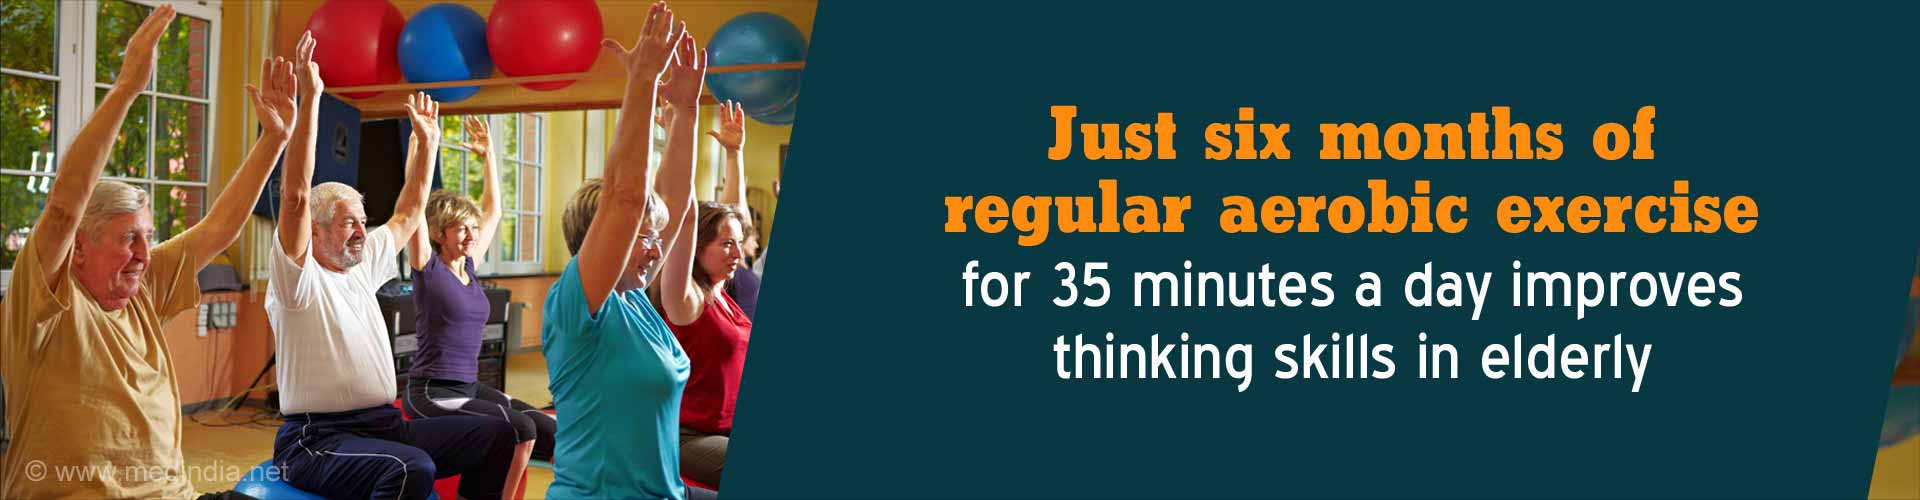 Just six months of regular aerobic exercise for 35 minutes a day improves thinking skills in elderly.